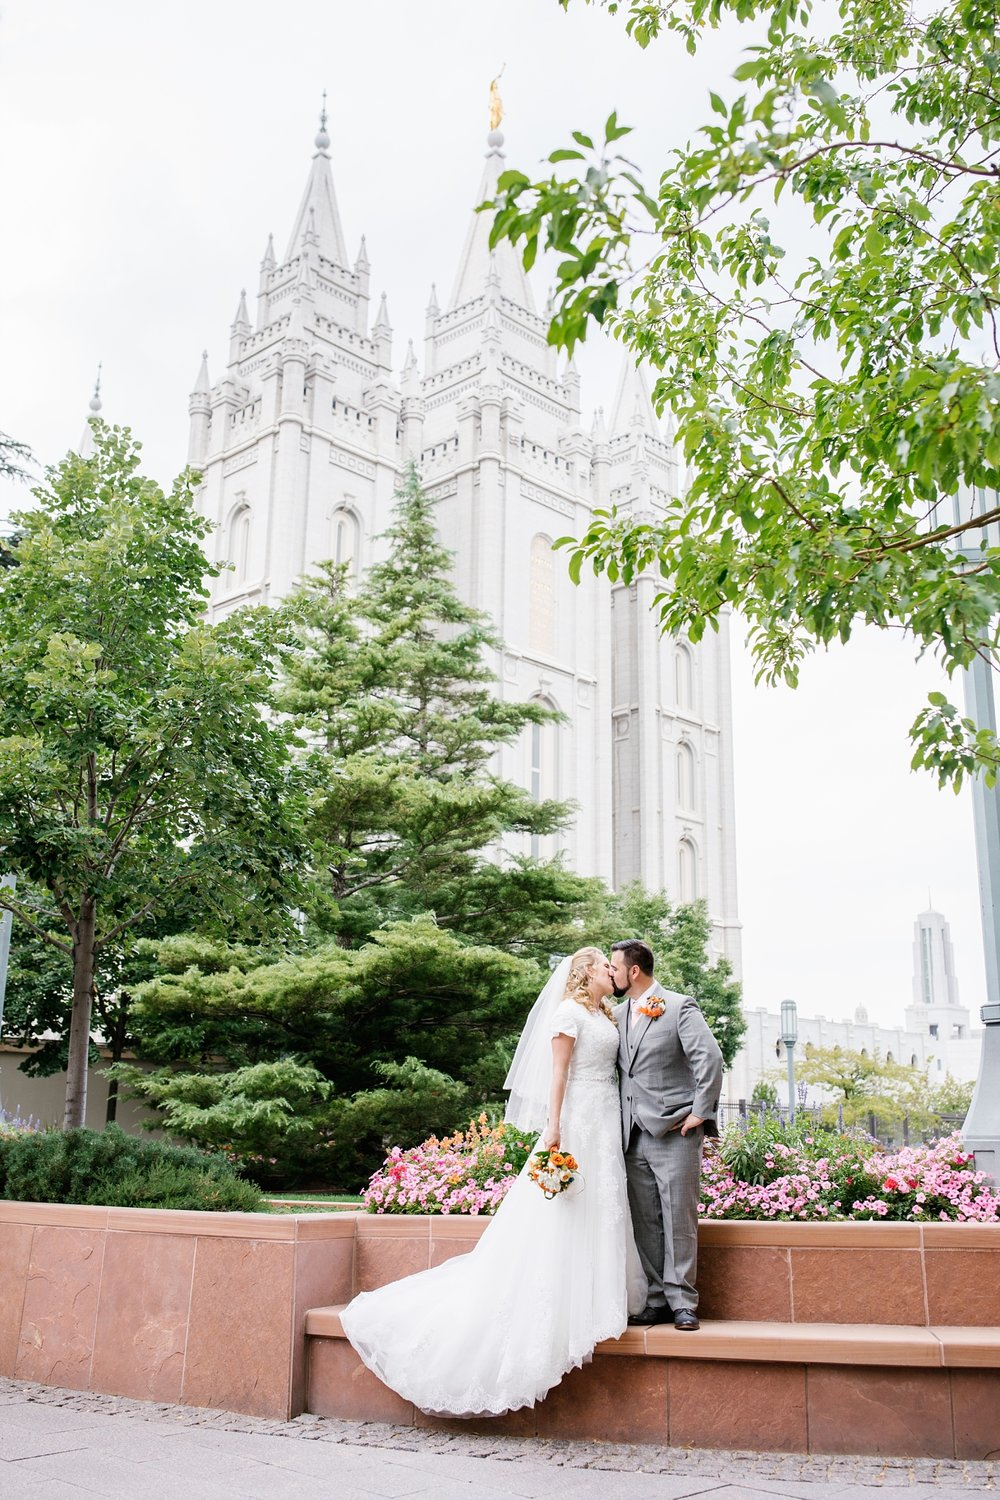 Justin and Melissa-177_Lizzie-B-Imagery-Utah-Wedding-Photographer-Salt-Lake-City-Temple-Photographer-Lion-House-Luncheon-The-Grand-Ballroom-Bountiful.jpg